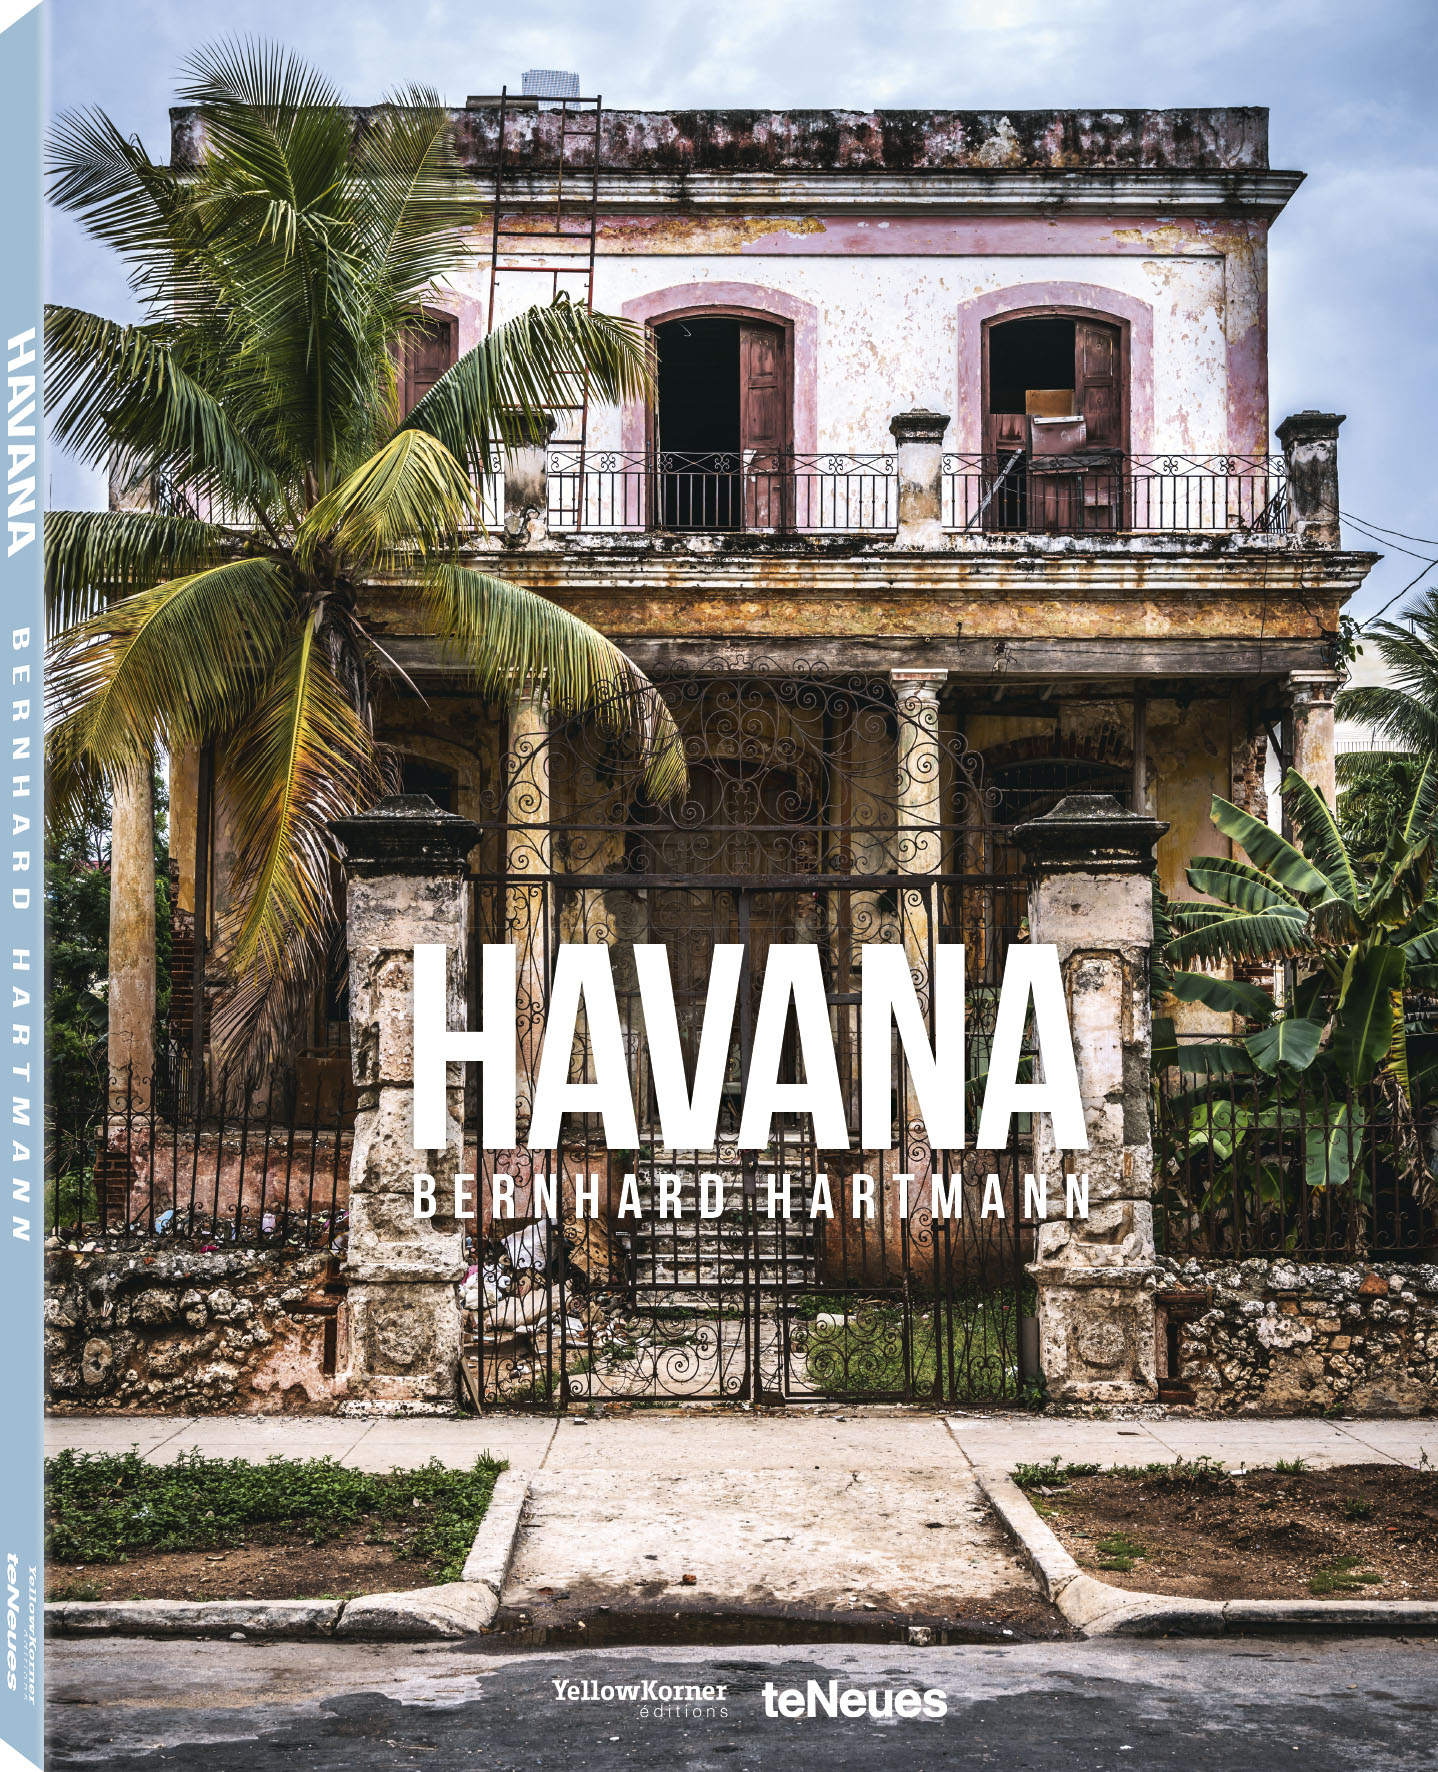 © HAVANA by Bernhard Hartmann, published by teNeues and YellowKorner, www.teneues.com, www.yellowkorner.com. Casa Vedado, El Vedado, 2016, Photo © 2016 Bernhard Hartmann. All rights reserved